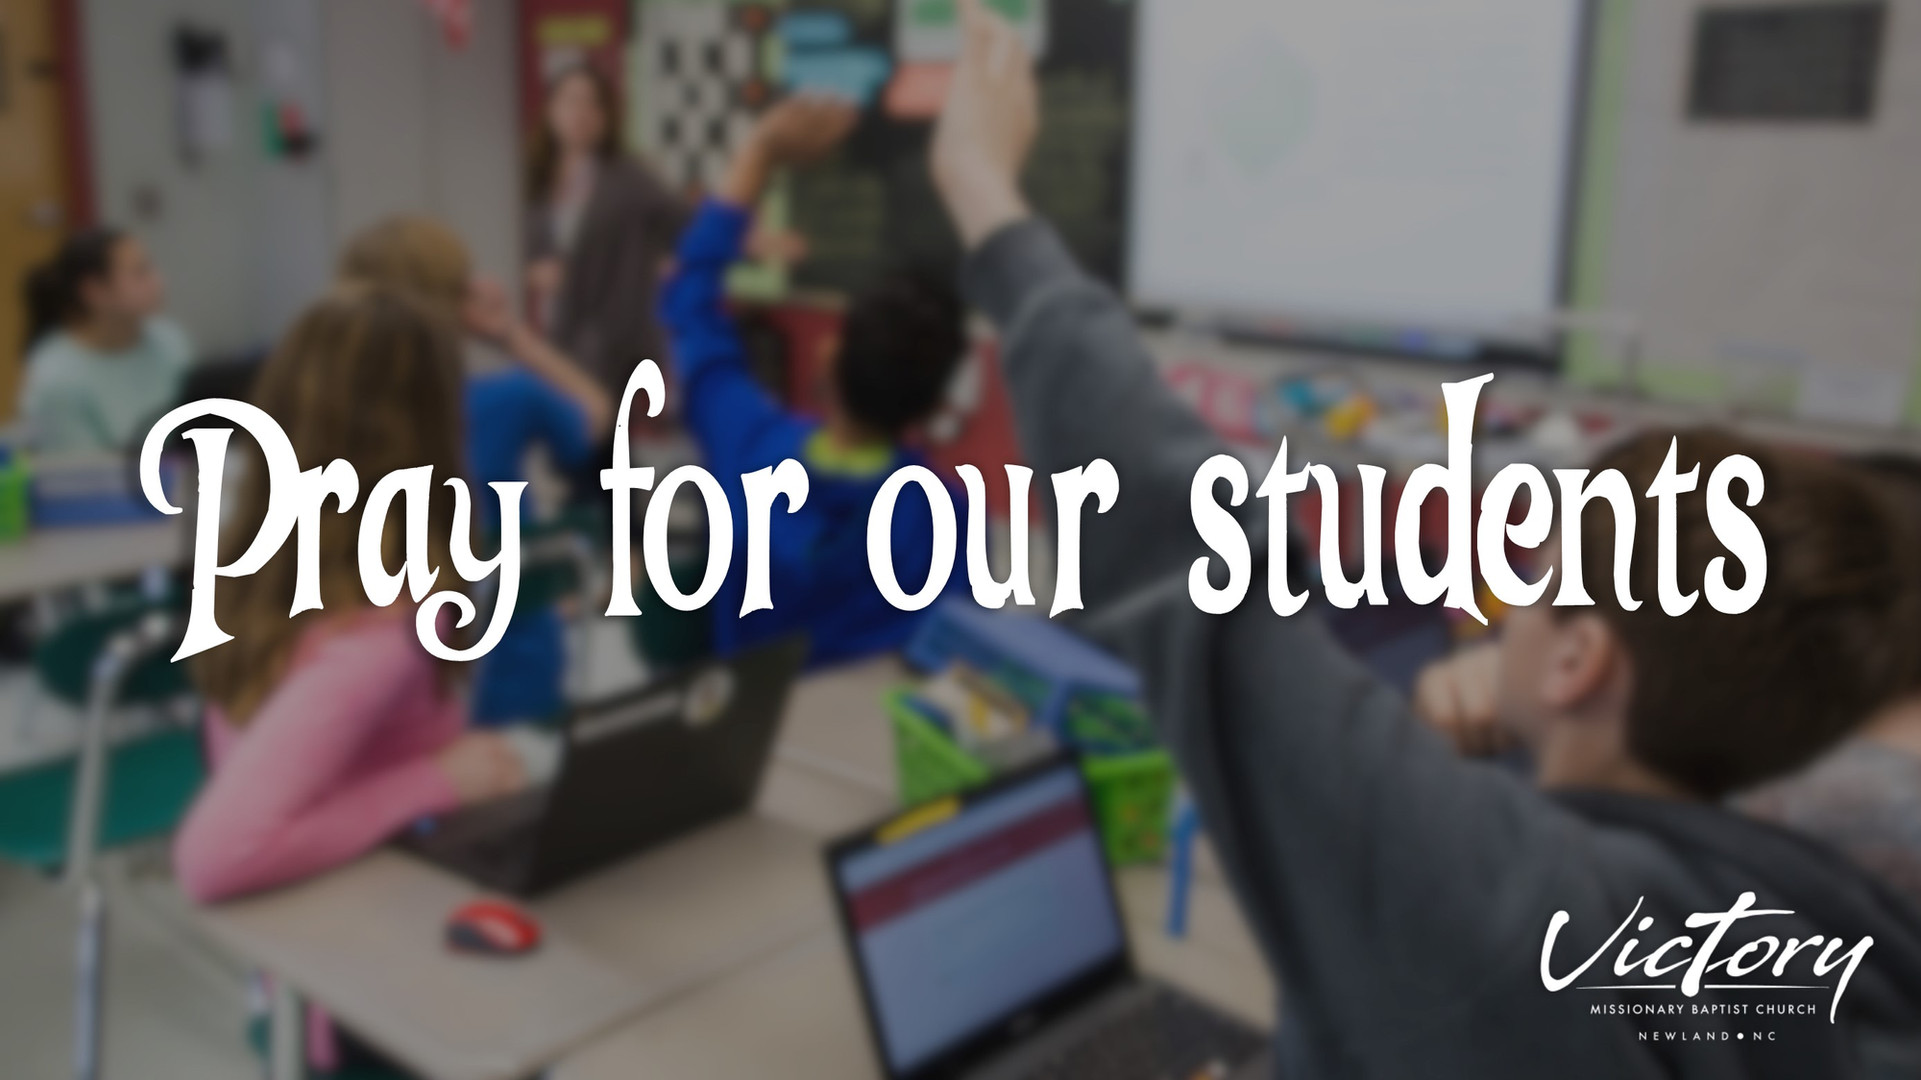 Pray for our students